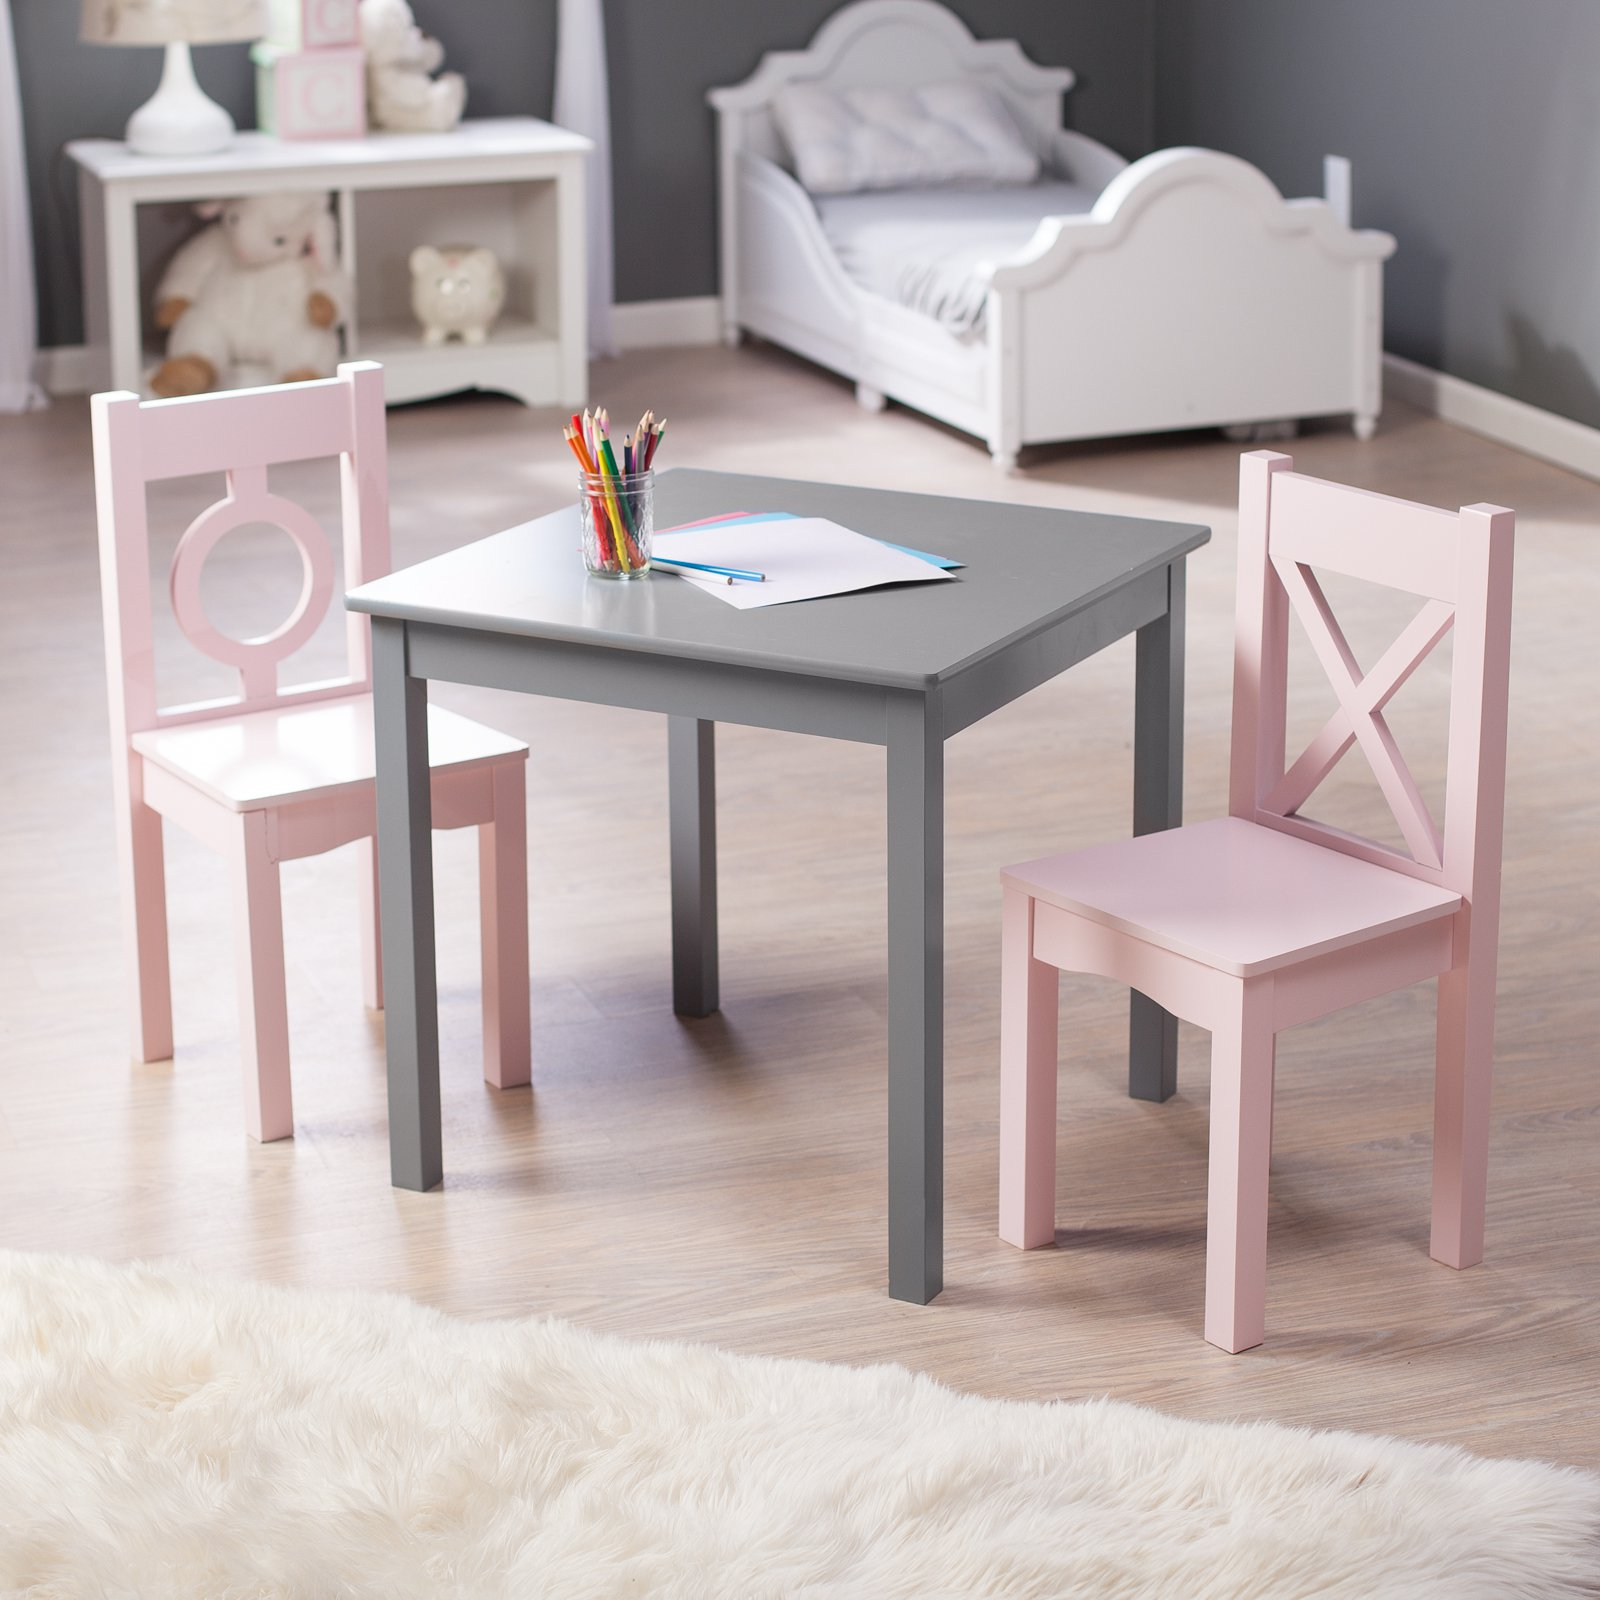 Lipper Hugs and Kisses Table and 2 Chair Set - Gray \u0026&; ... & Lipper Hugs and Kisses Table and 2 Chair Set - Gray \u0026amp; Pink ...